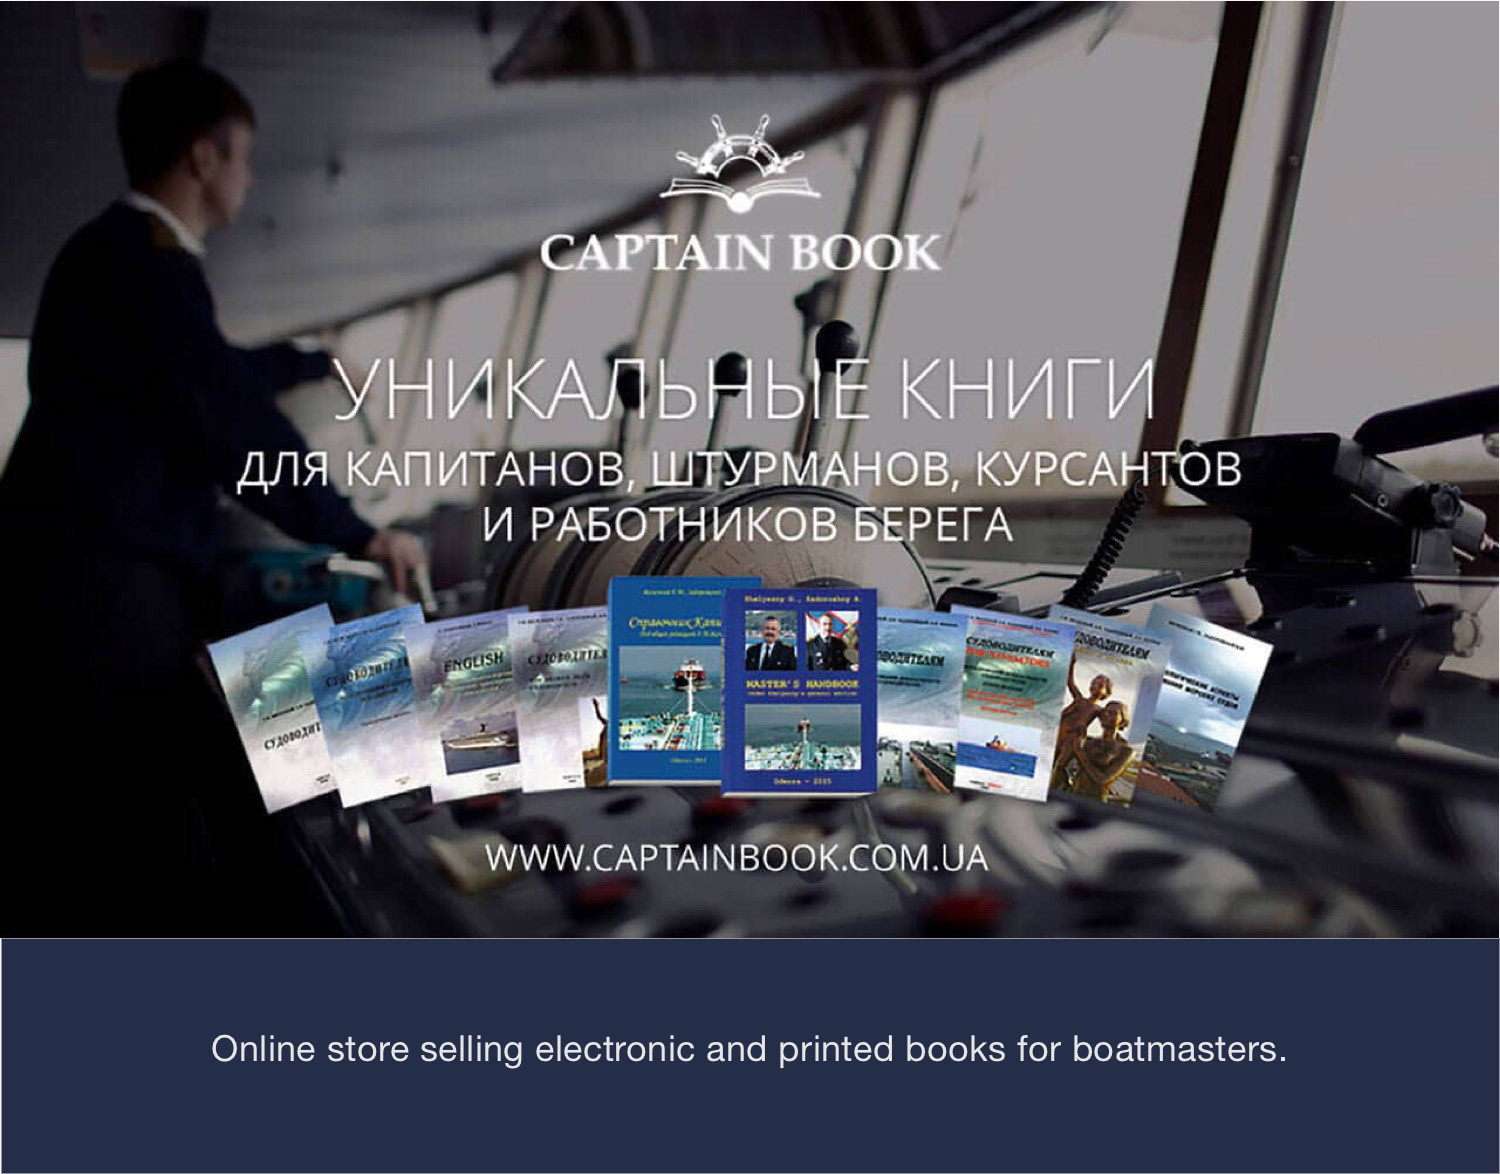 Captainbook